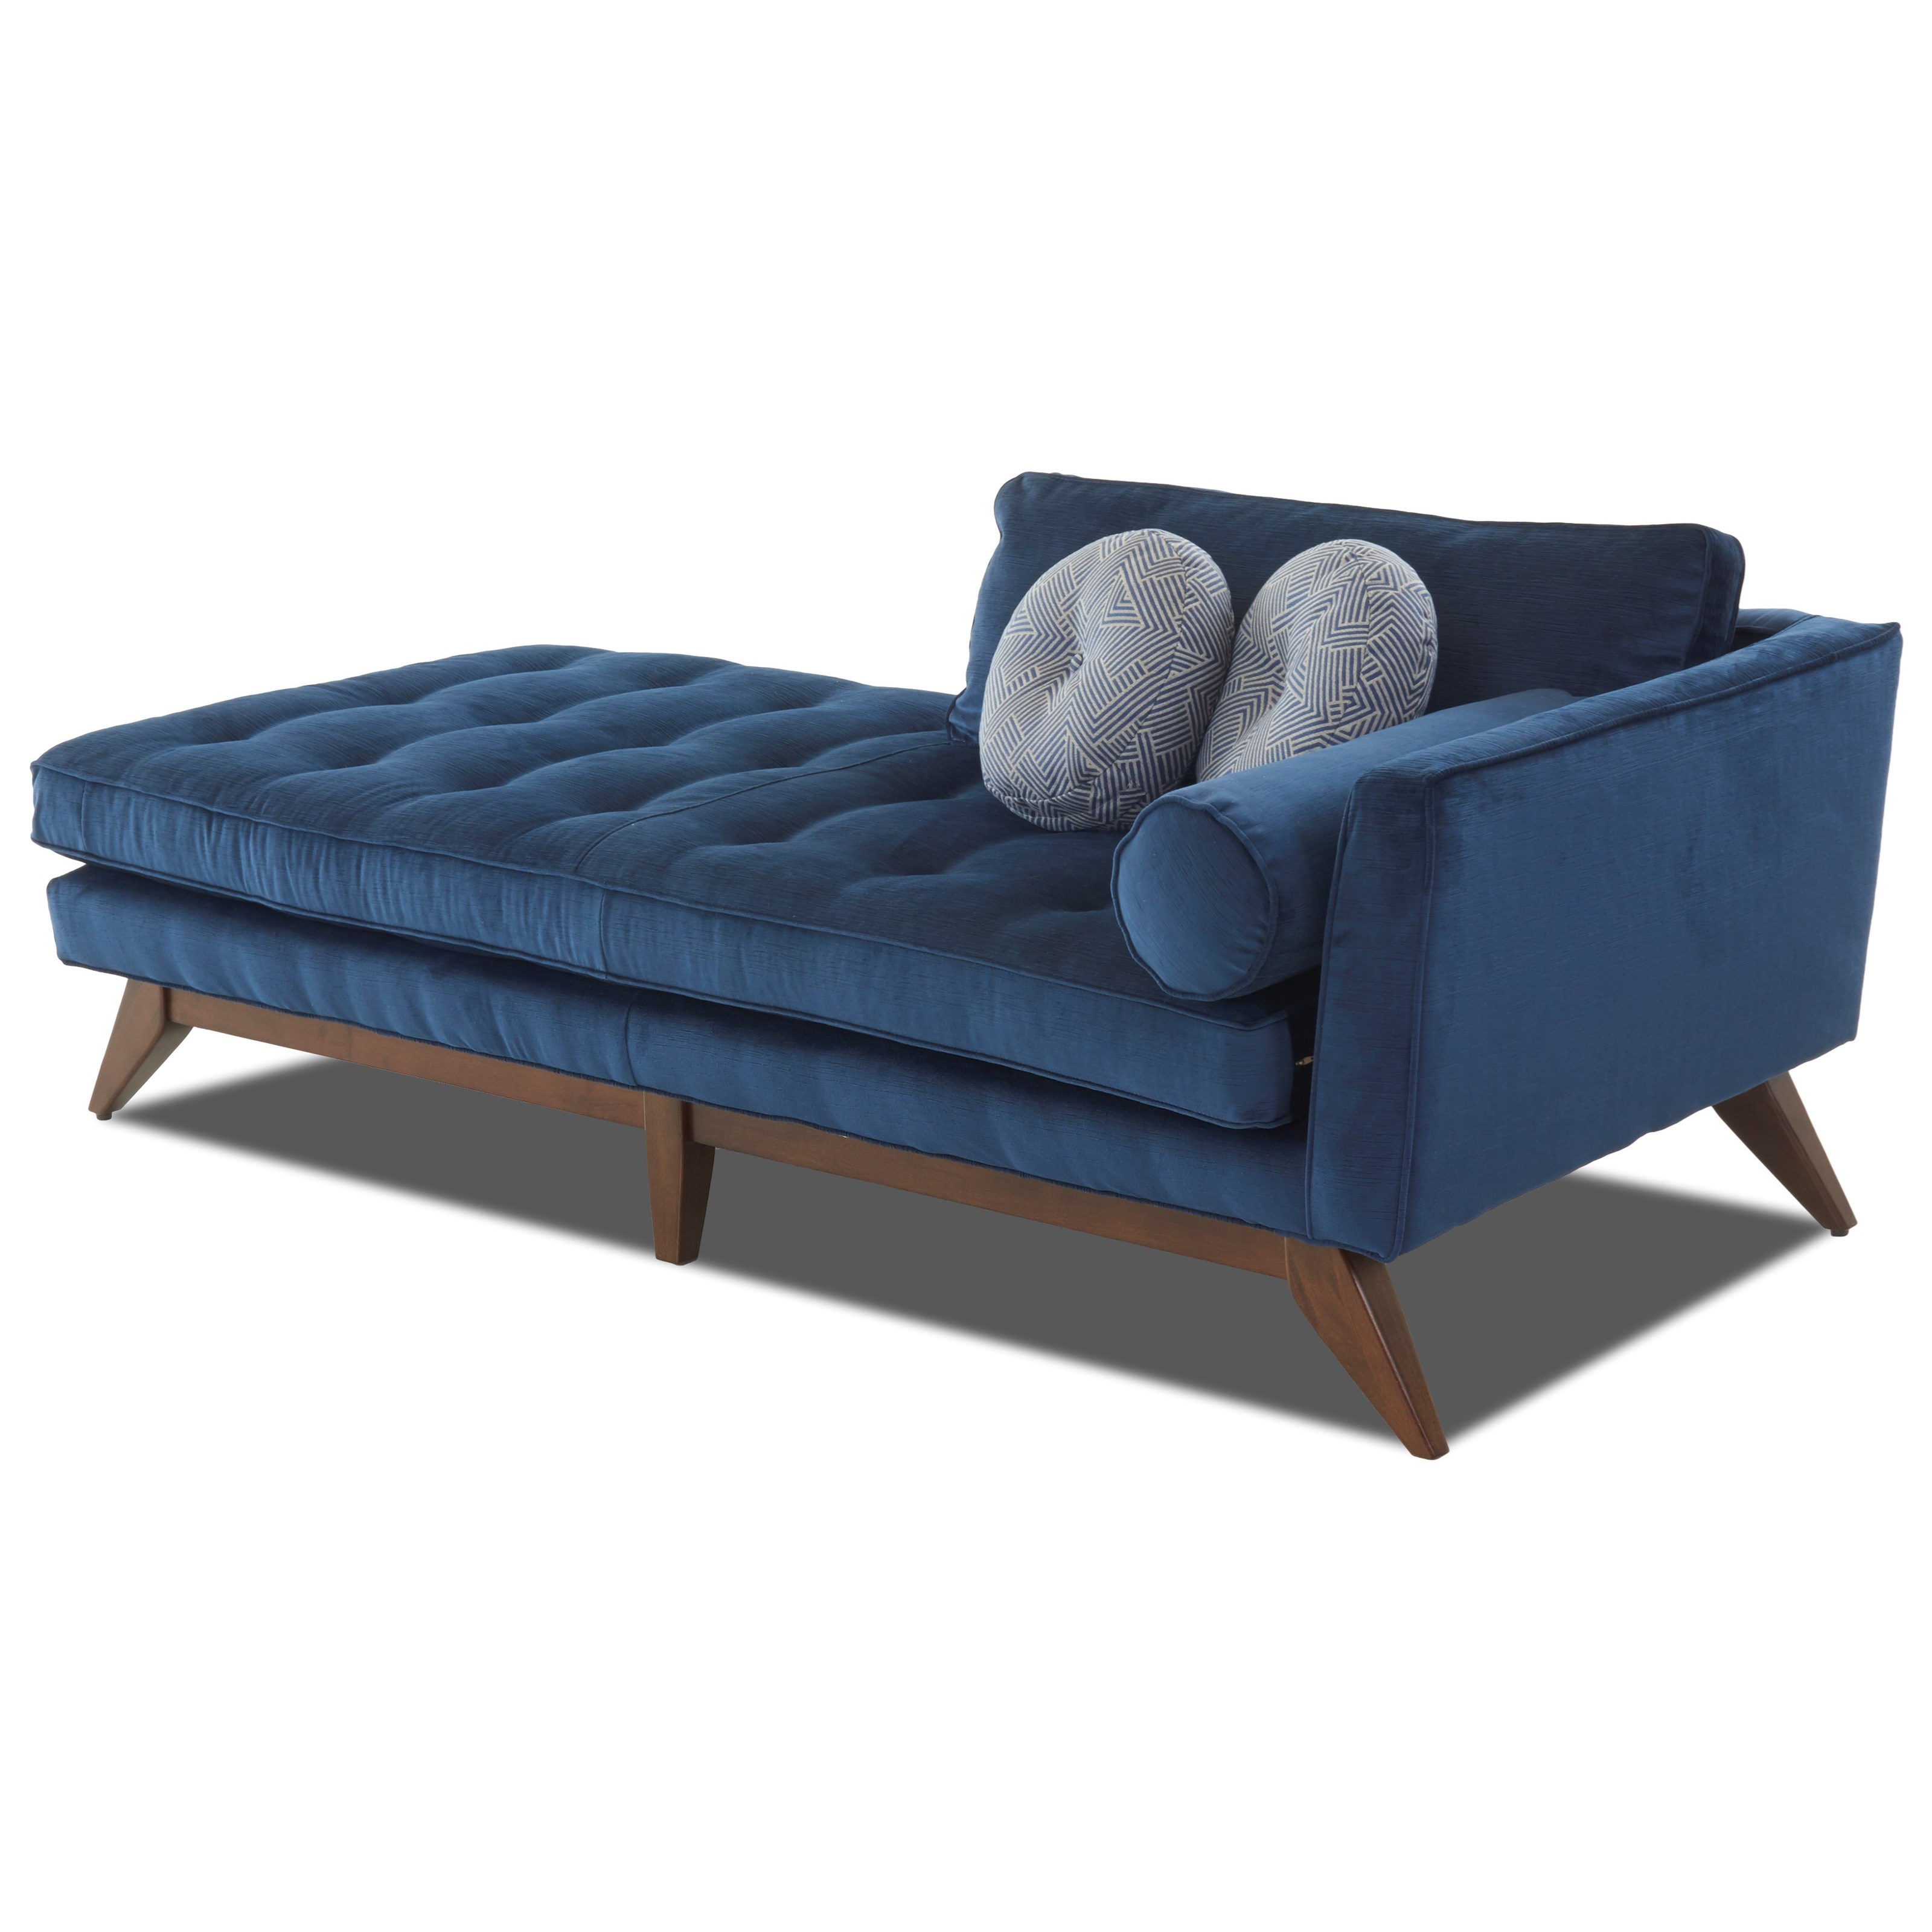 Fairfax Chaise Lounge by Klaussner at Lapeer Furniture & Mattress Center